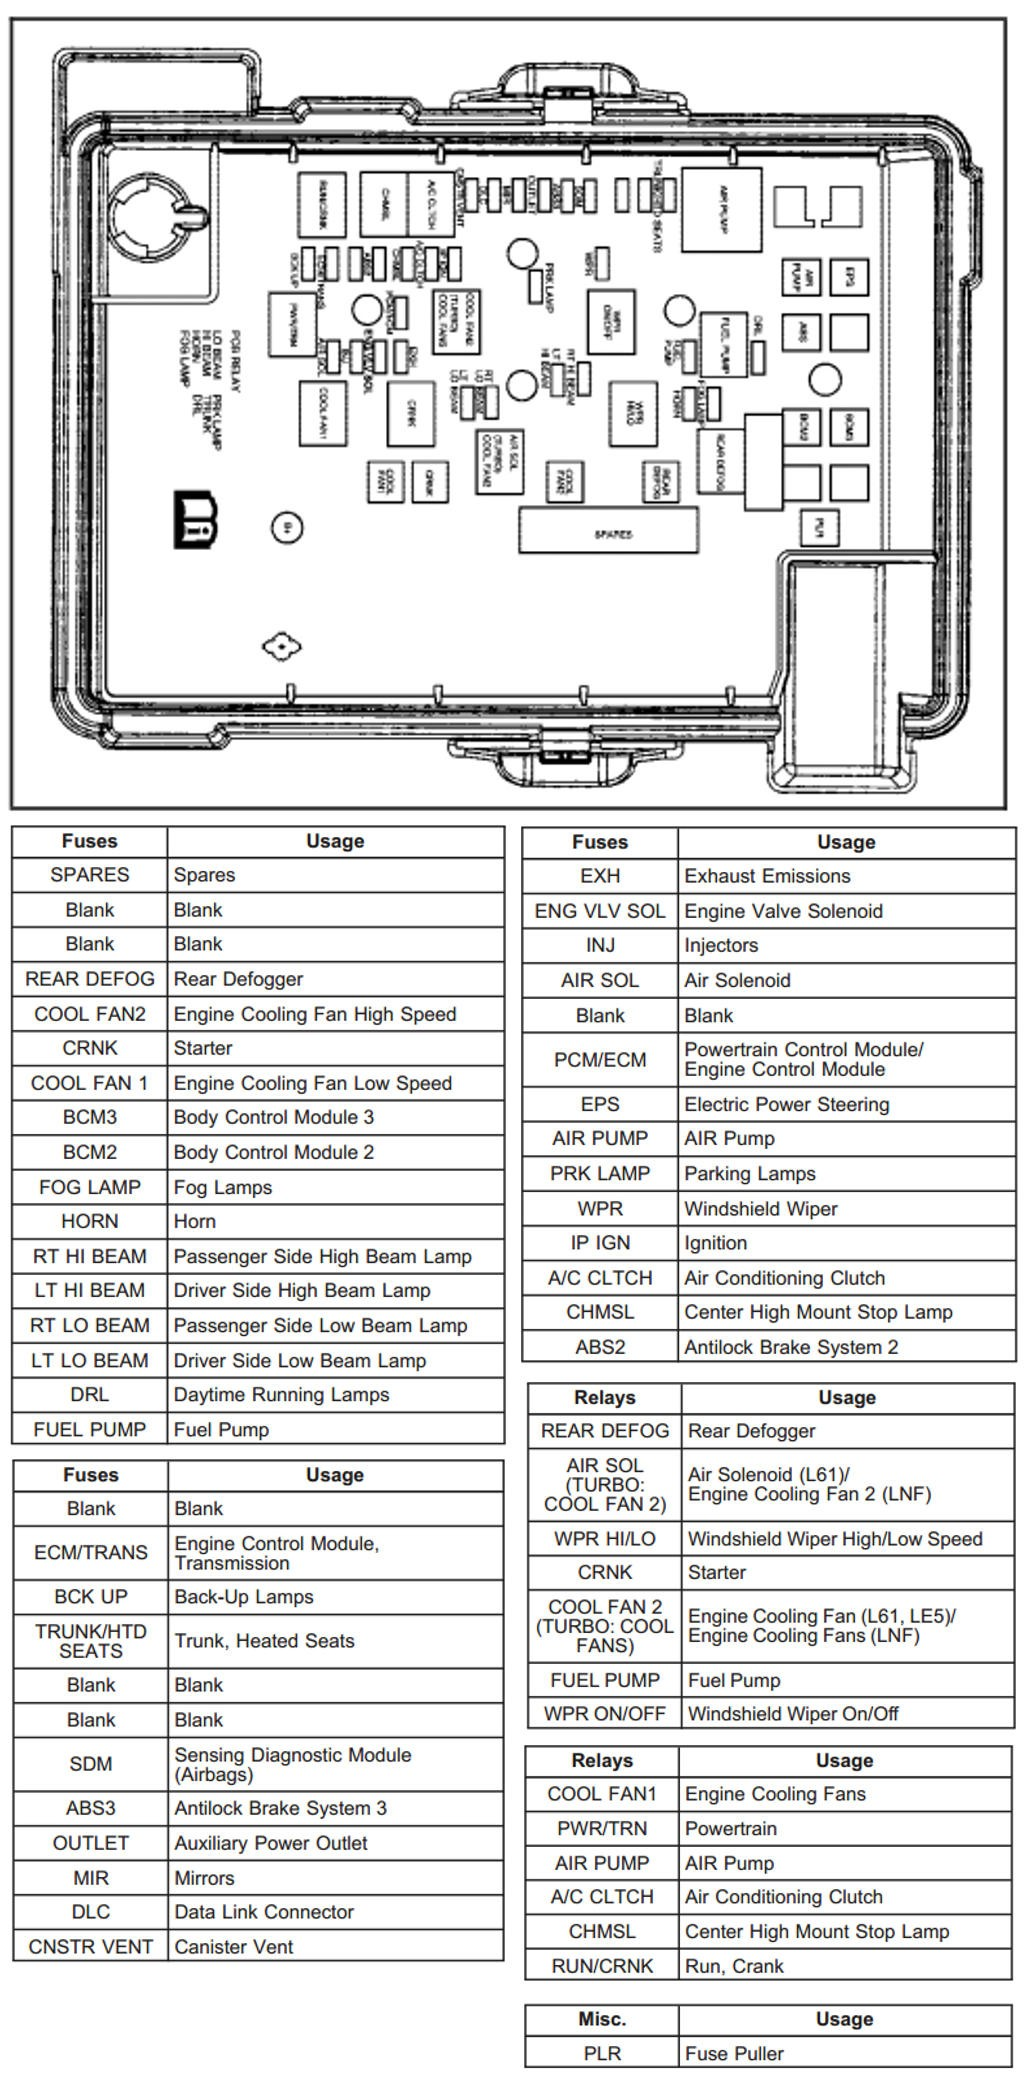 2006 Chevy Cobalt Engine Wiring Diagram - Electrical Drawing Wiring ...